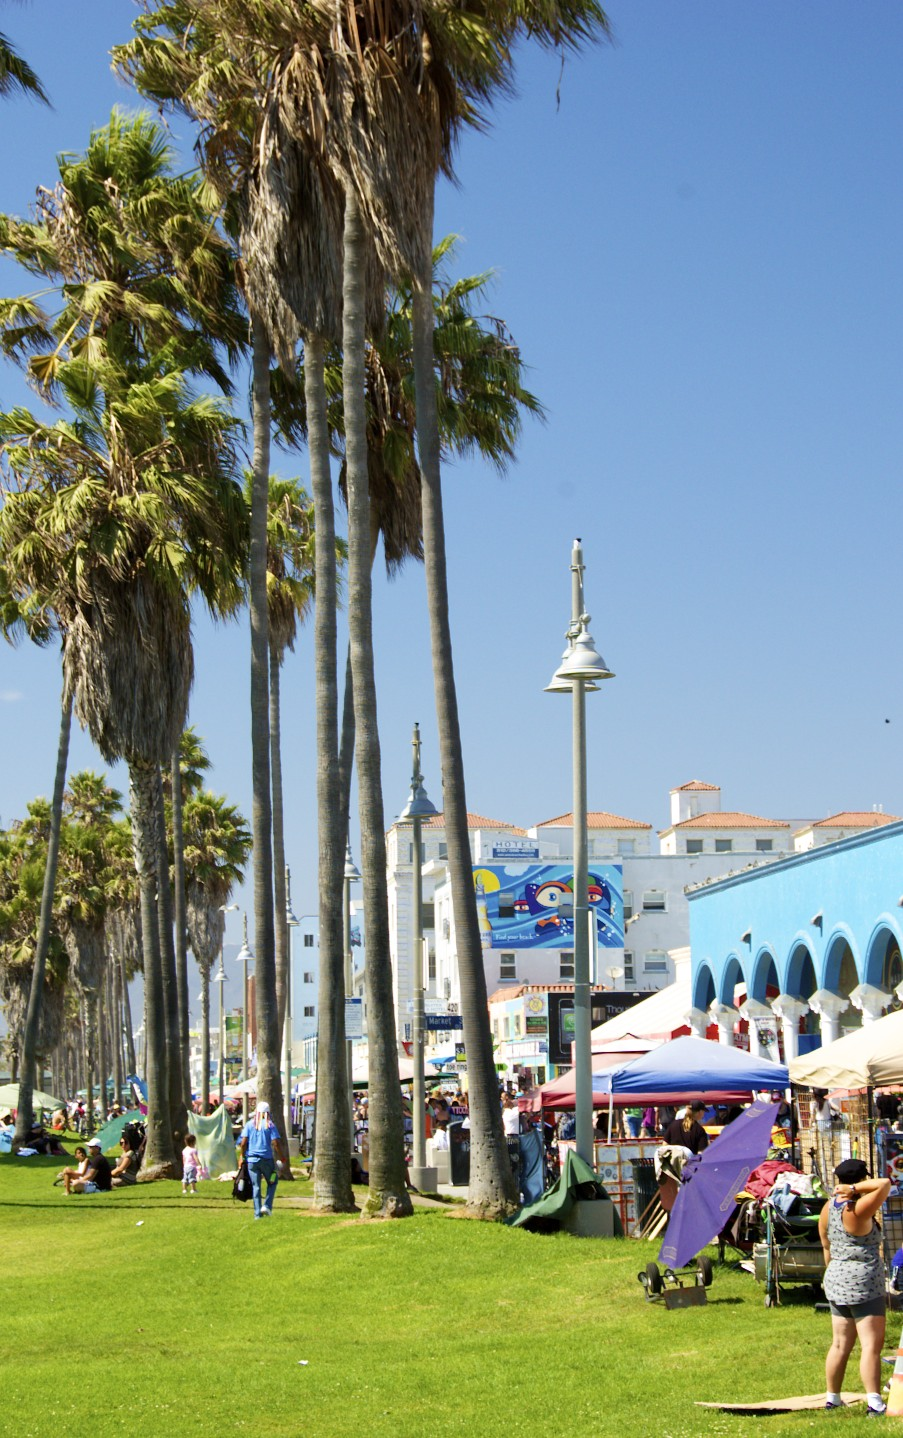 Travels With L (and Sometimes Z & F): Venice Beach, CA